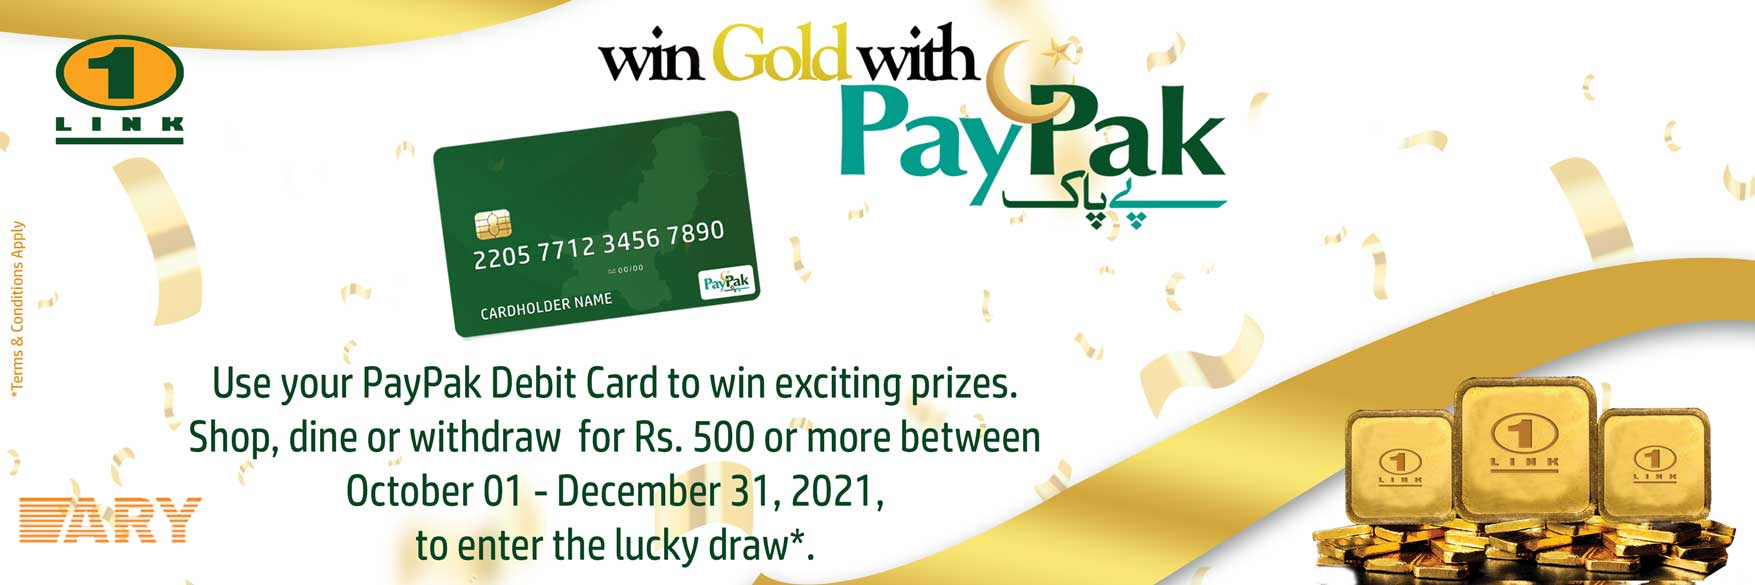 Win Gold with PayPak